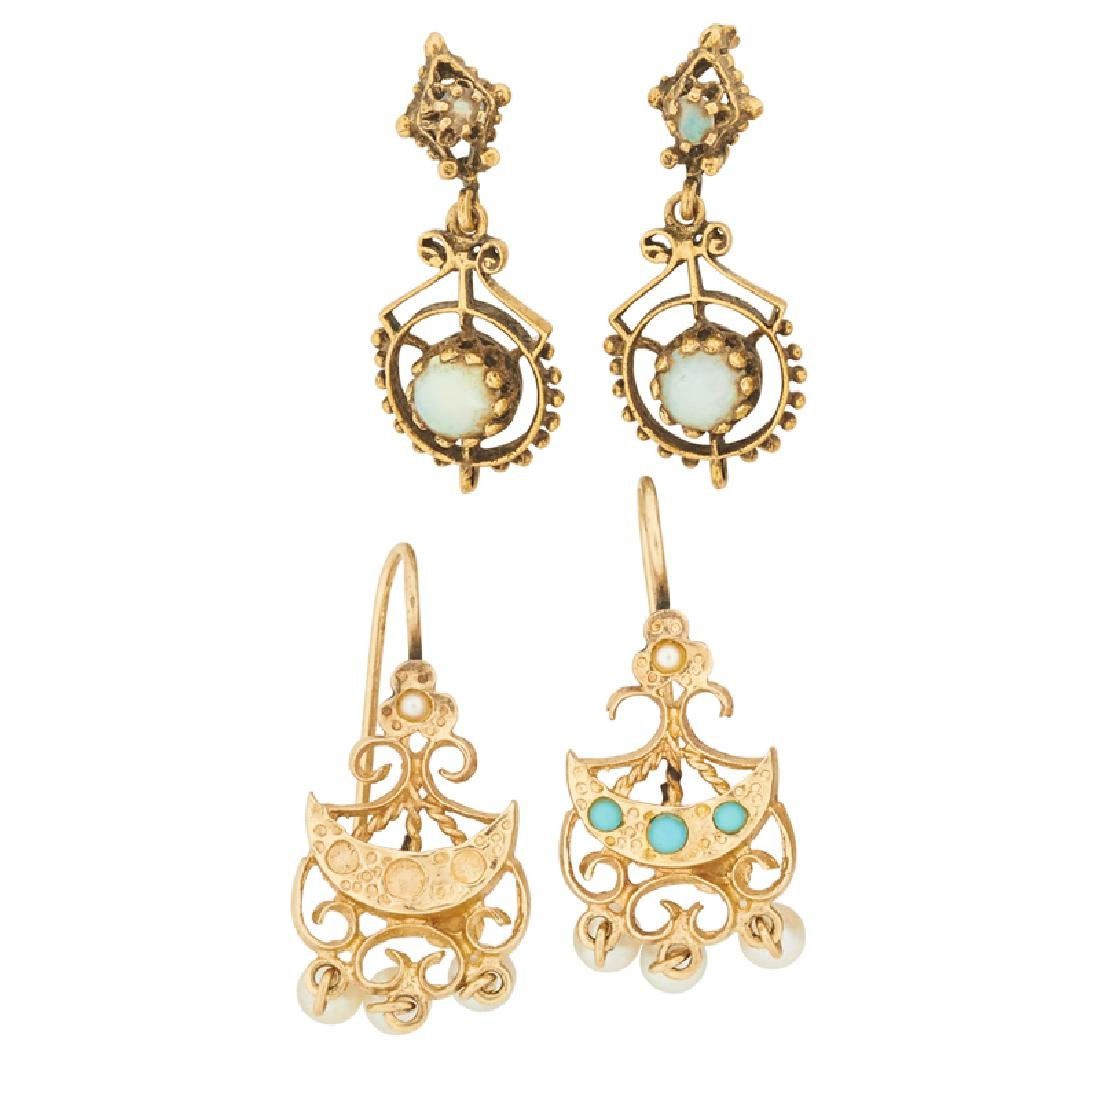 VICTORIAN REVIVAL STYLE GEM-SET YELLOW GOLD EARRINGS